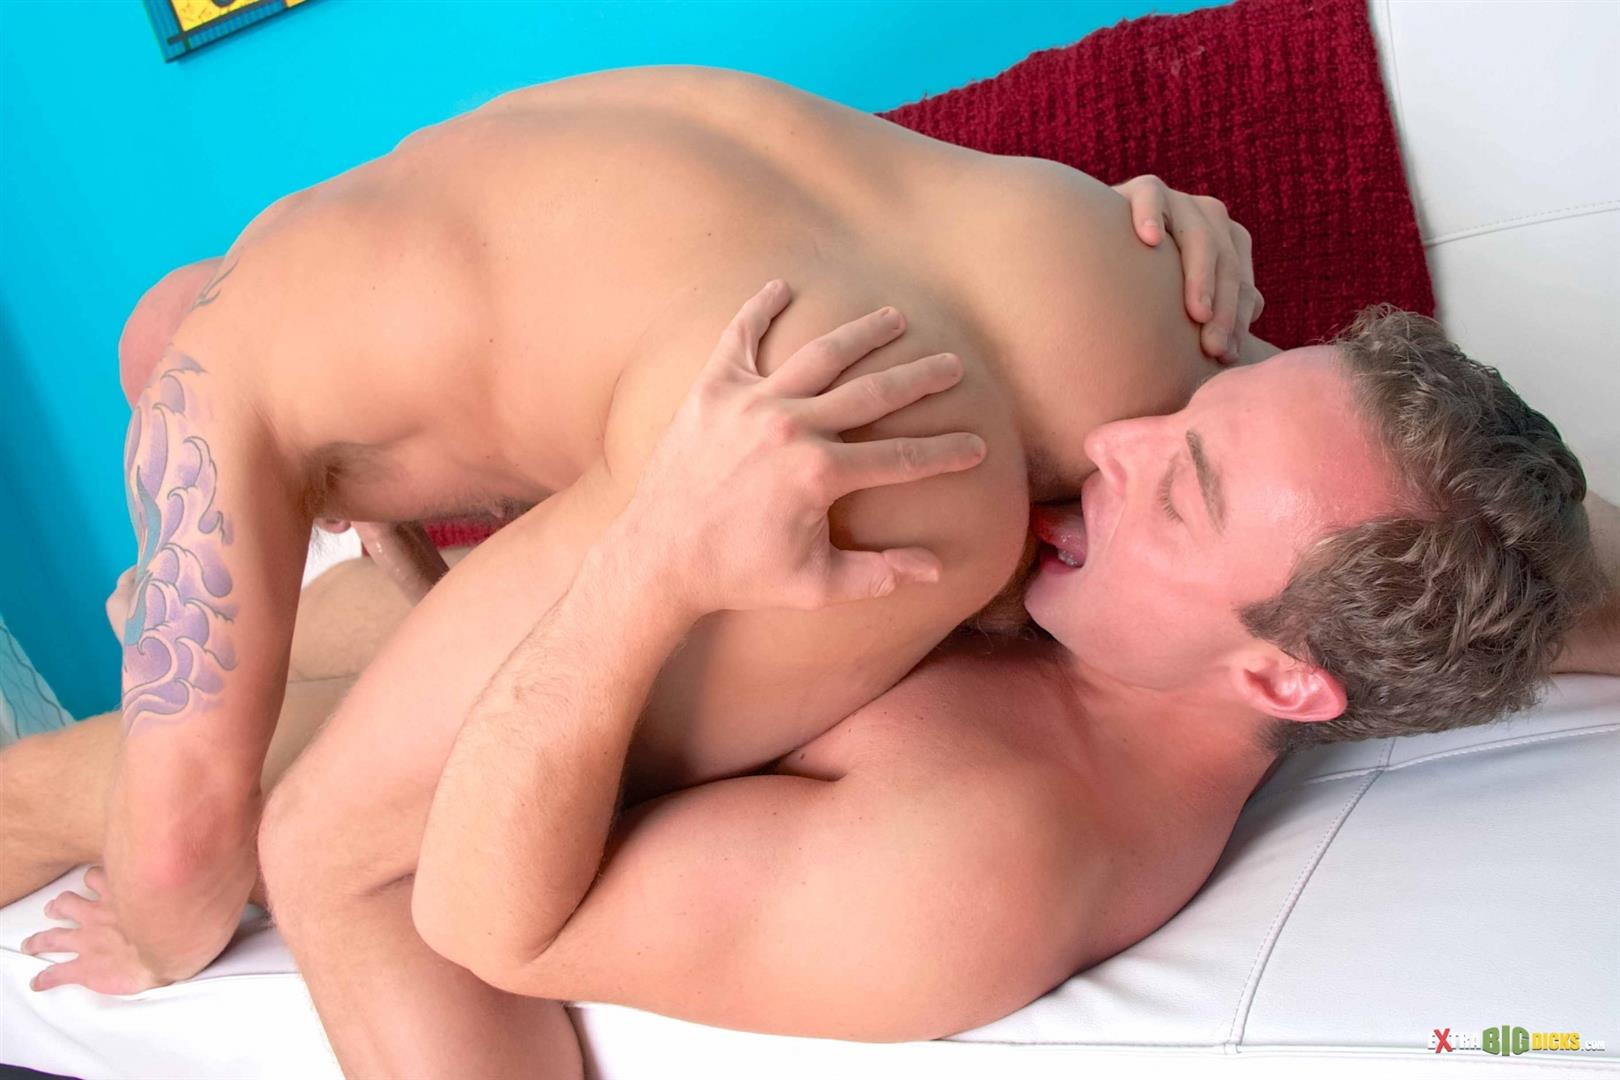 Extra Big Dicks Drake Jaden Jacob Durham Hairy Muscle Guy Gets Fucked With A Huge Cock Amateur Gay Porn 05 Hairy Muscle Stud Drake Jaden Takes A Huge Cock Up His Ass